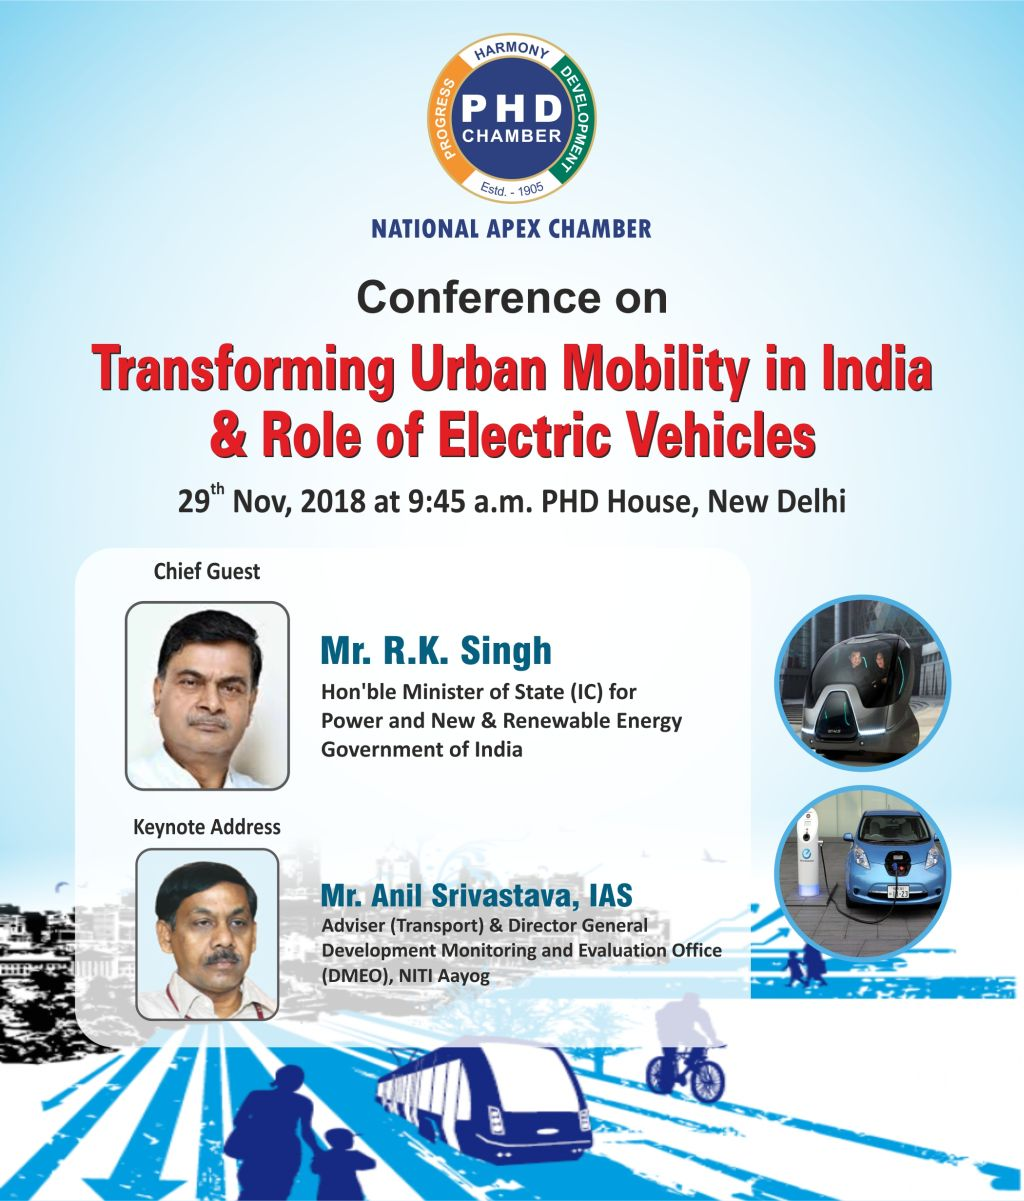 Conference on Transforming Urban Mobility in India & Role of Electric Vehicles